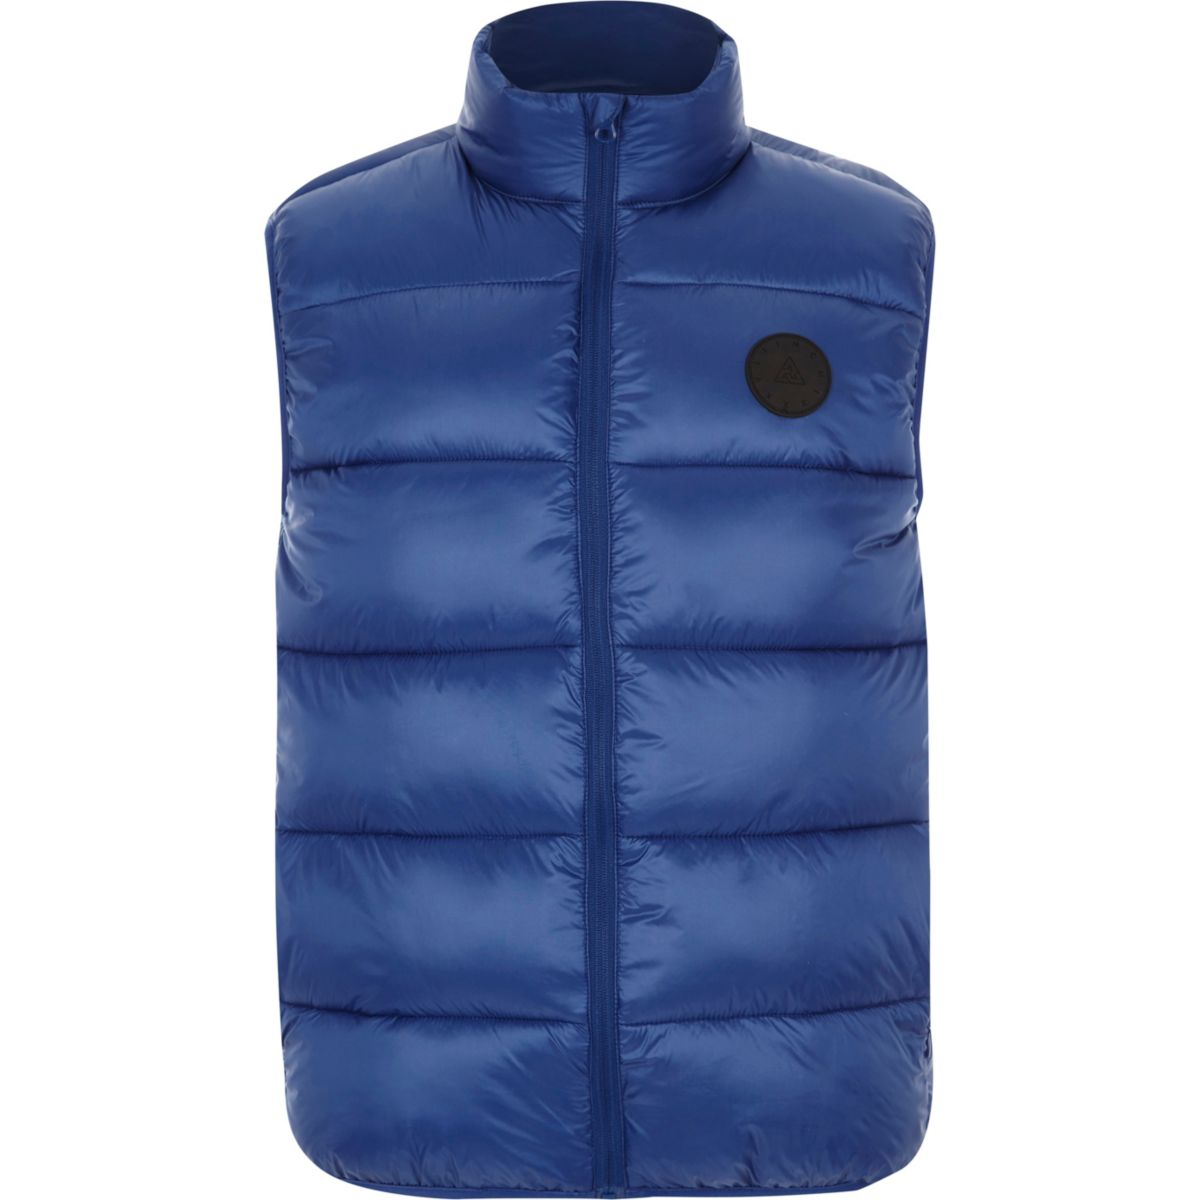 Blue funnel neck puffer gilet